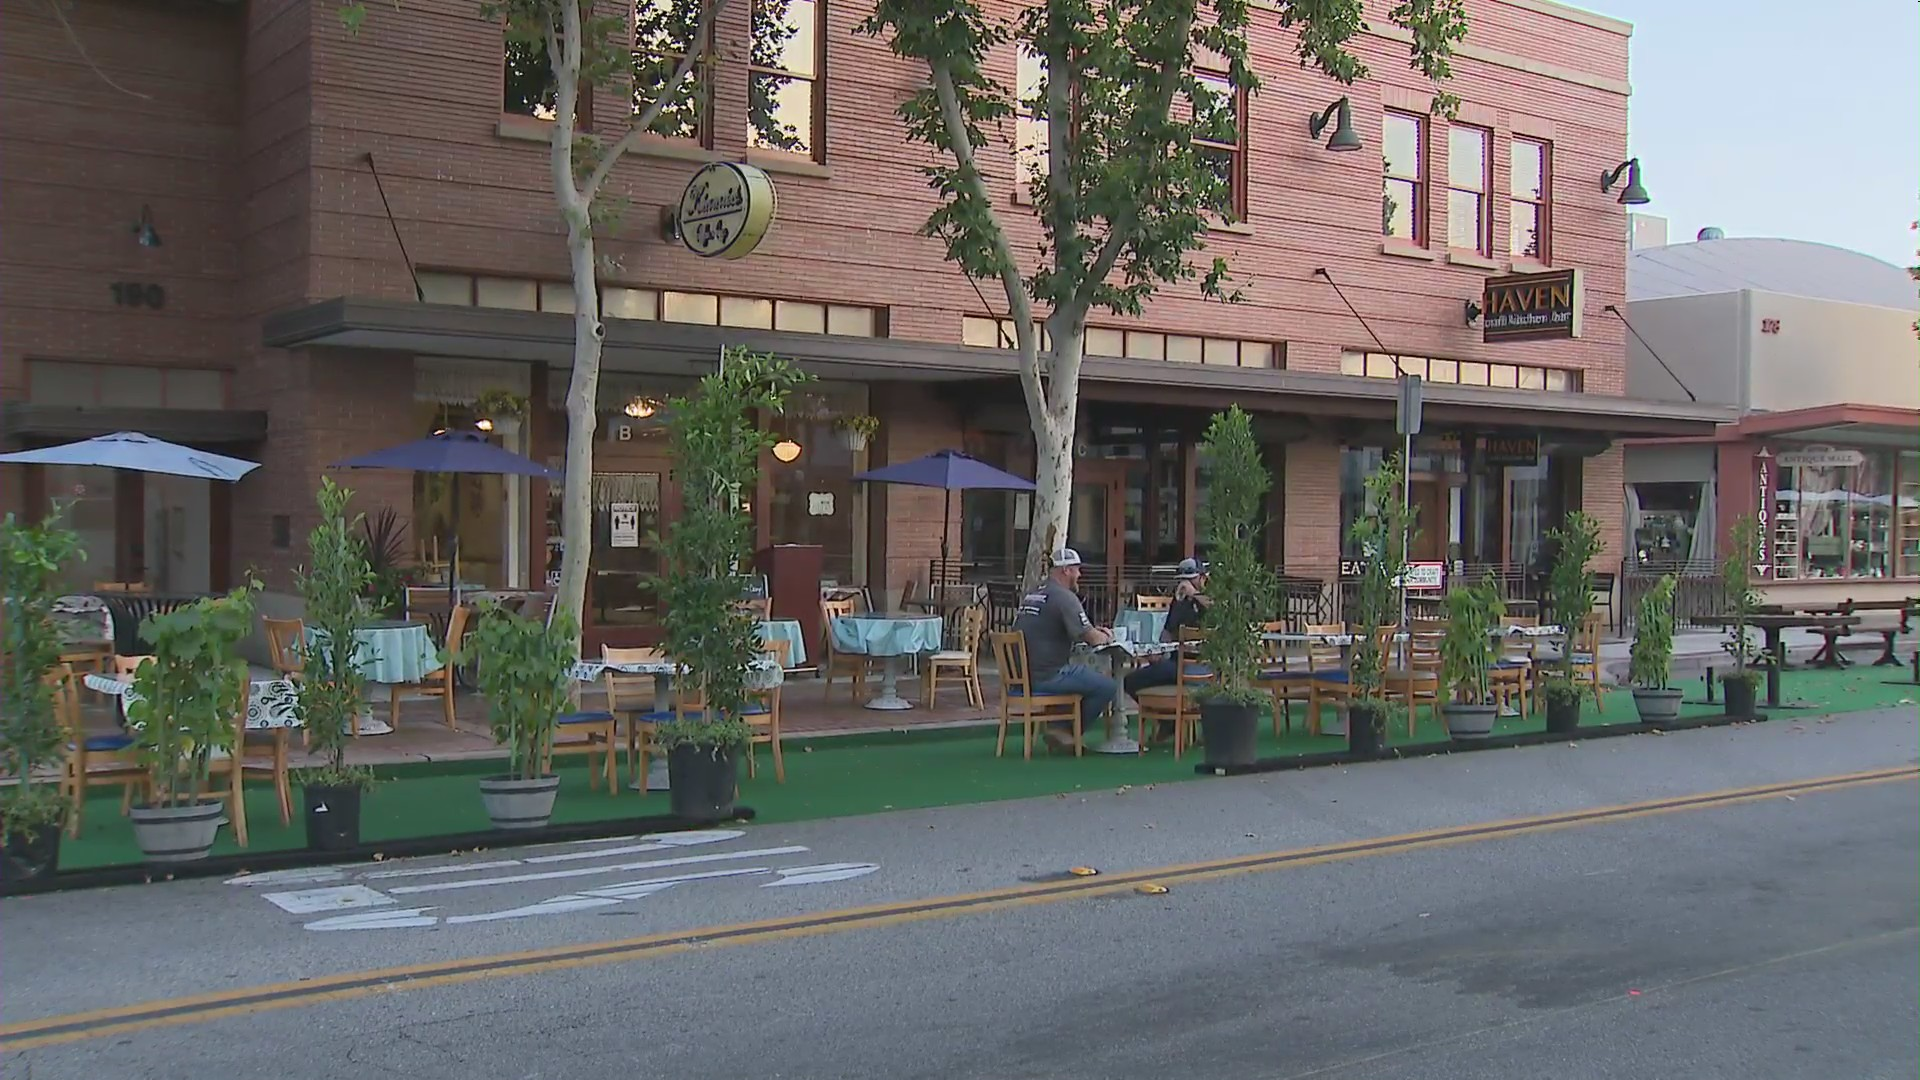 A pair of diners eat outdoors at a restaurant in Old Towne Orange on July 10, 2020. (KTLA)